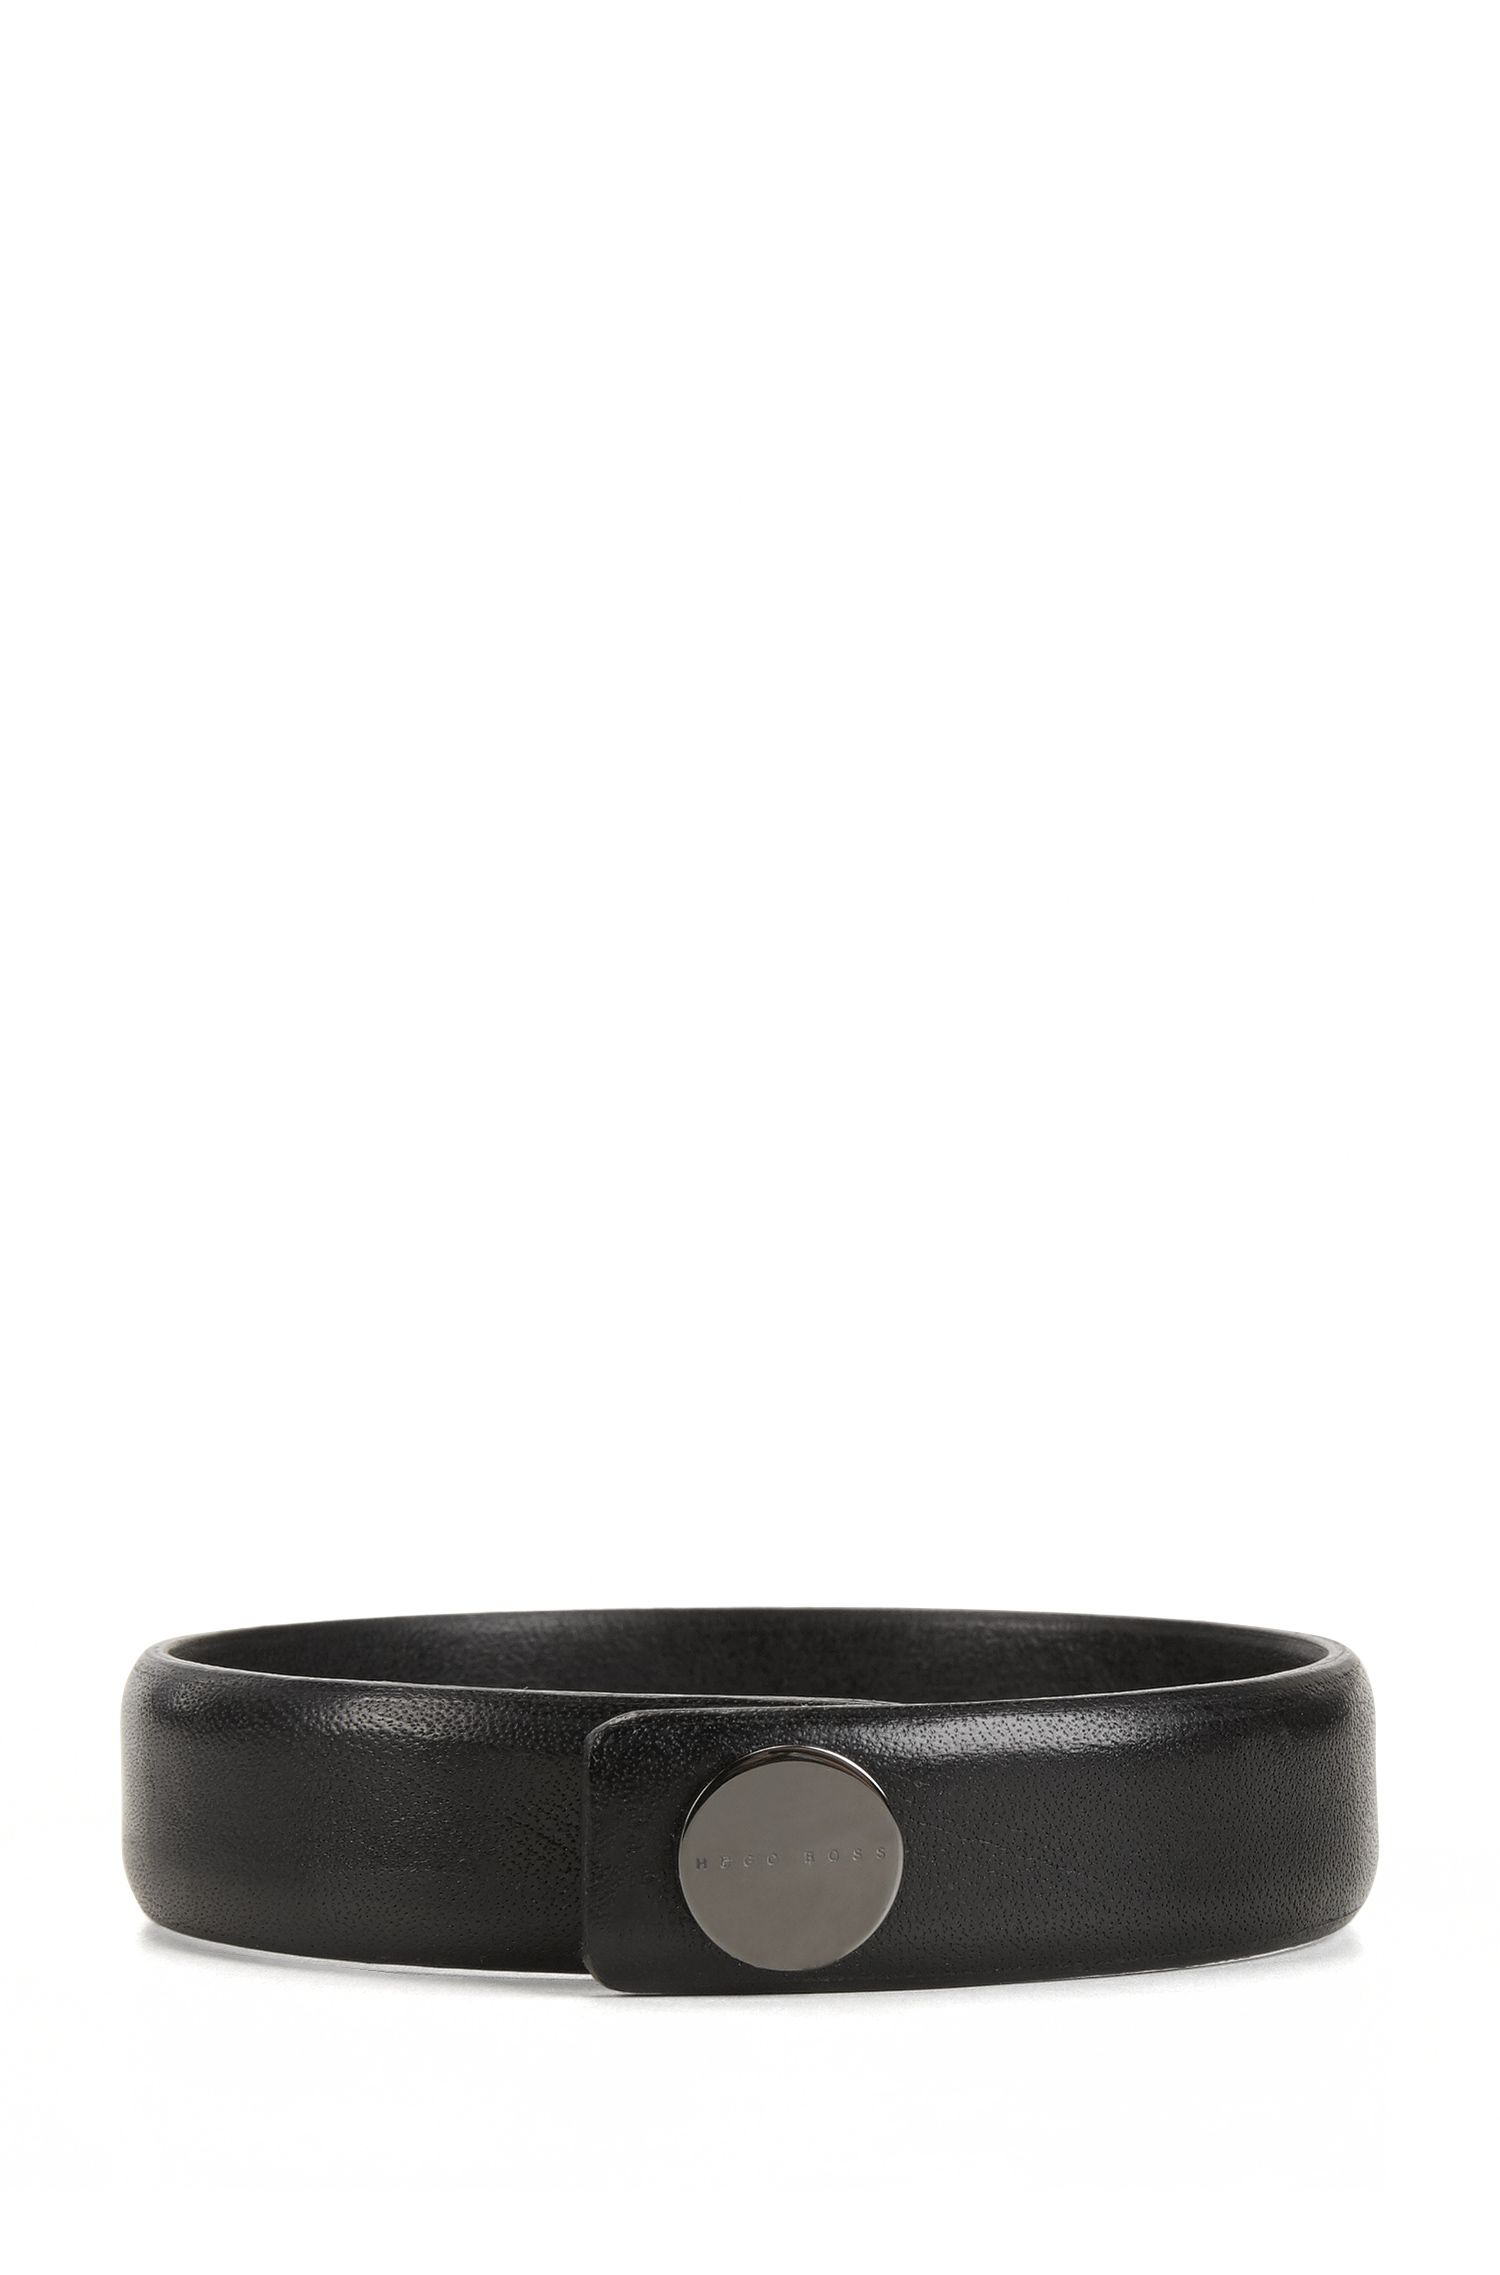 Grained leather bracelet with press-stud closure